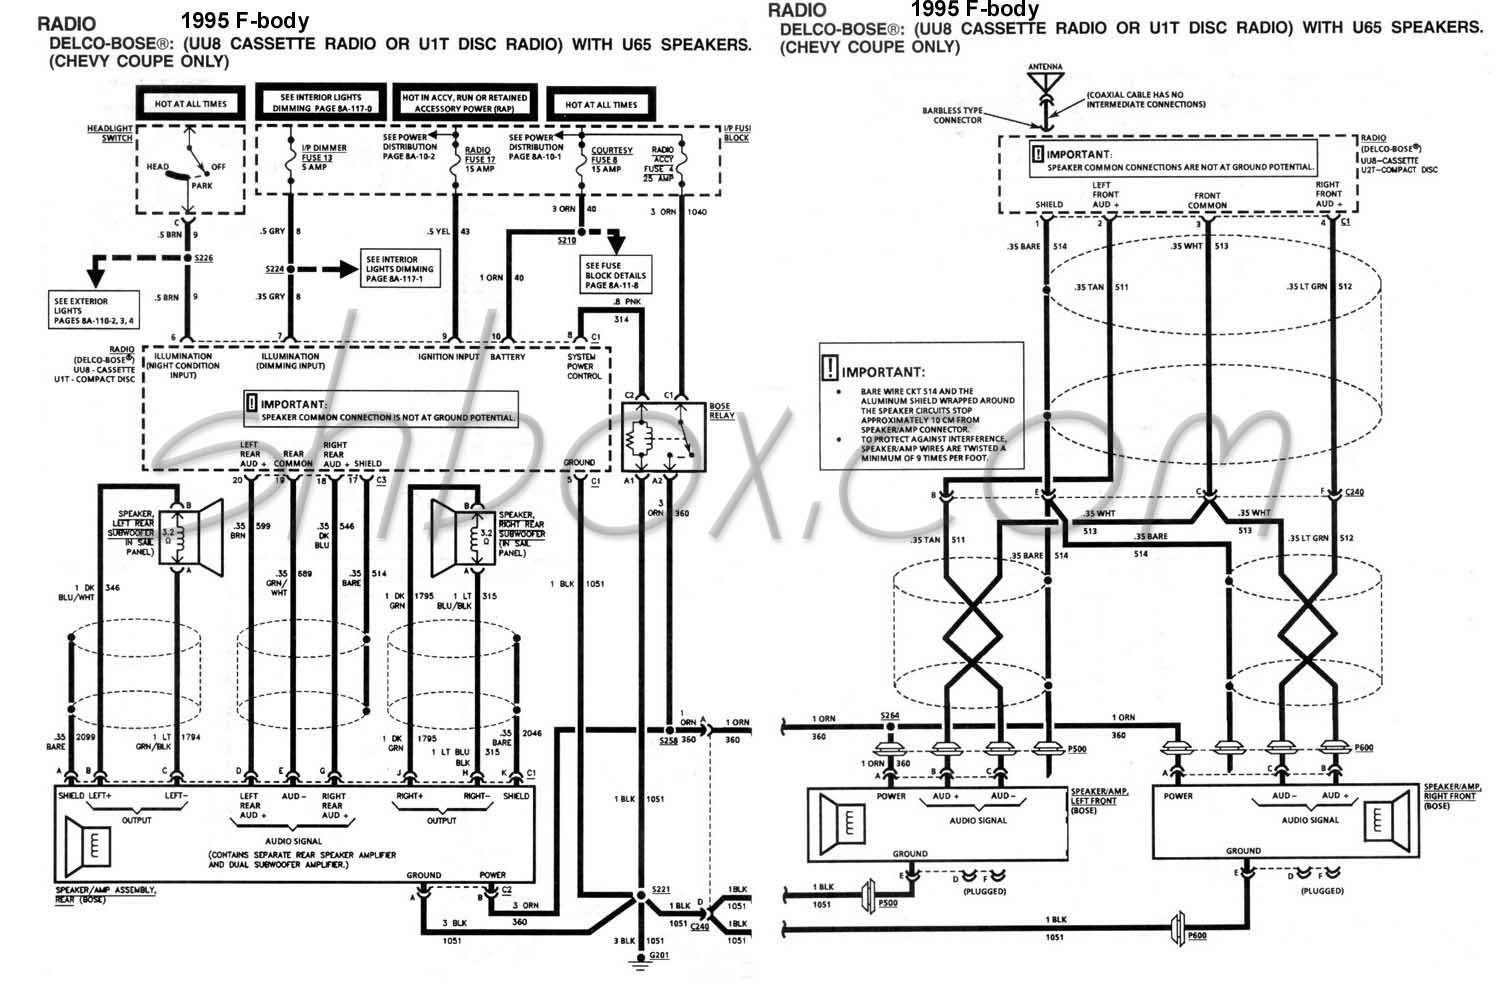 Chevy Camaro Z28 5 7l Wiring Diagram